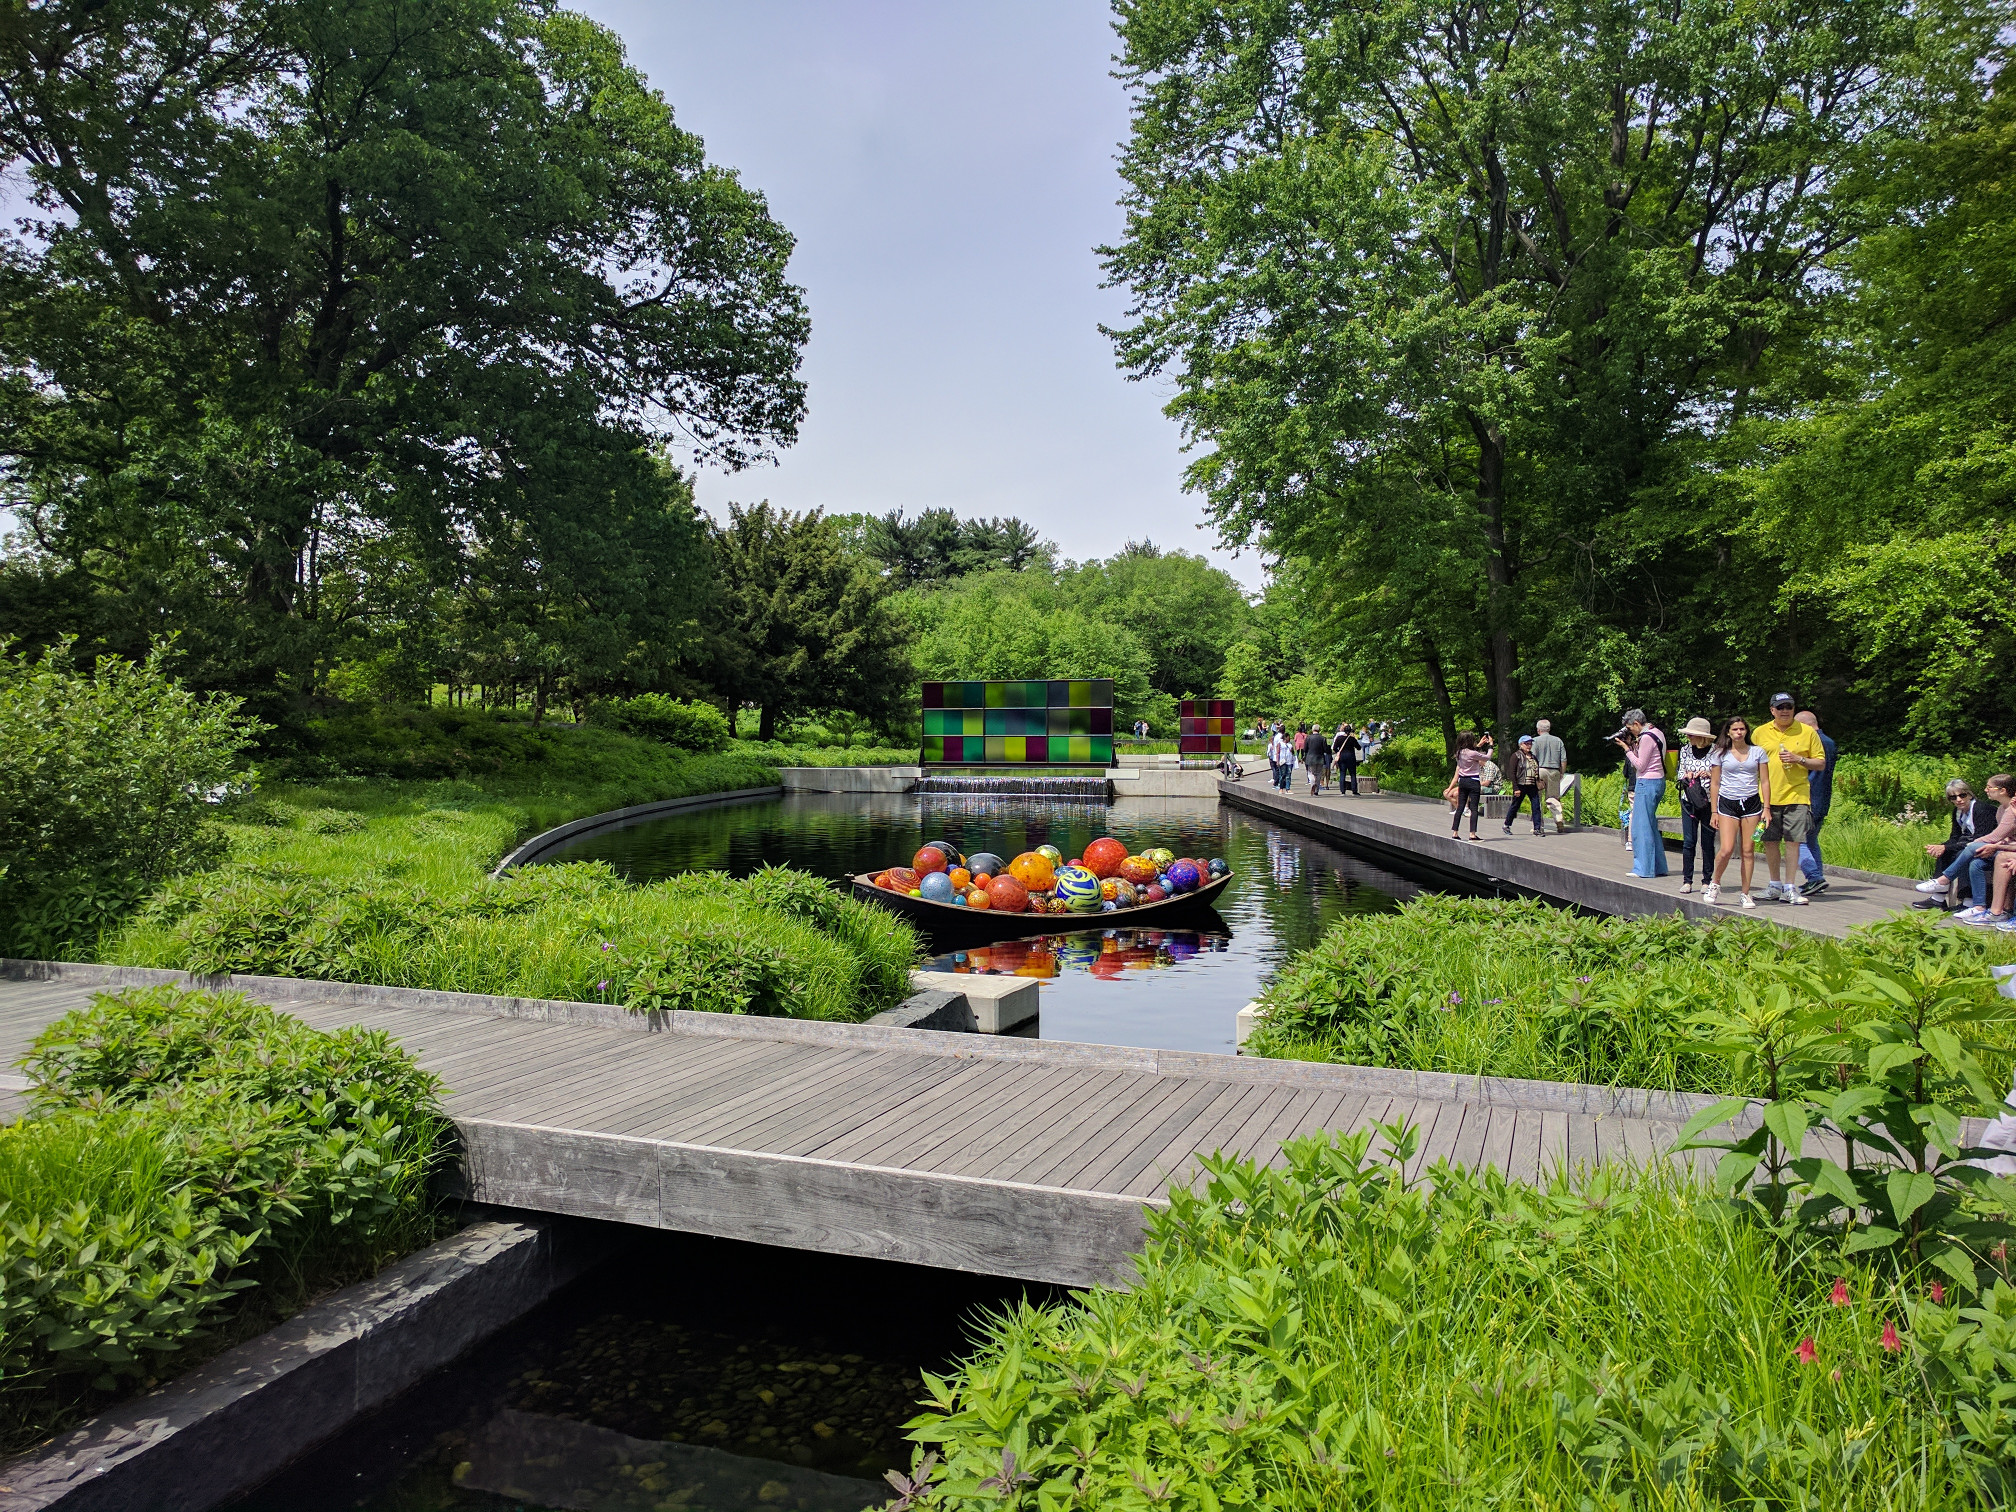 NYBG Pond and Bridge